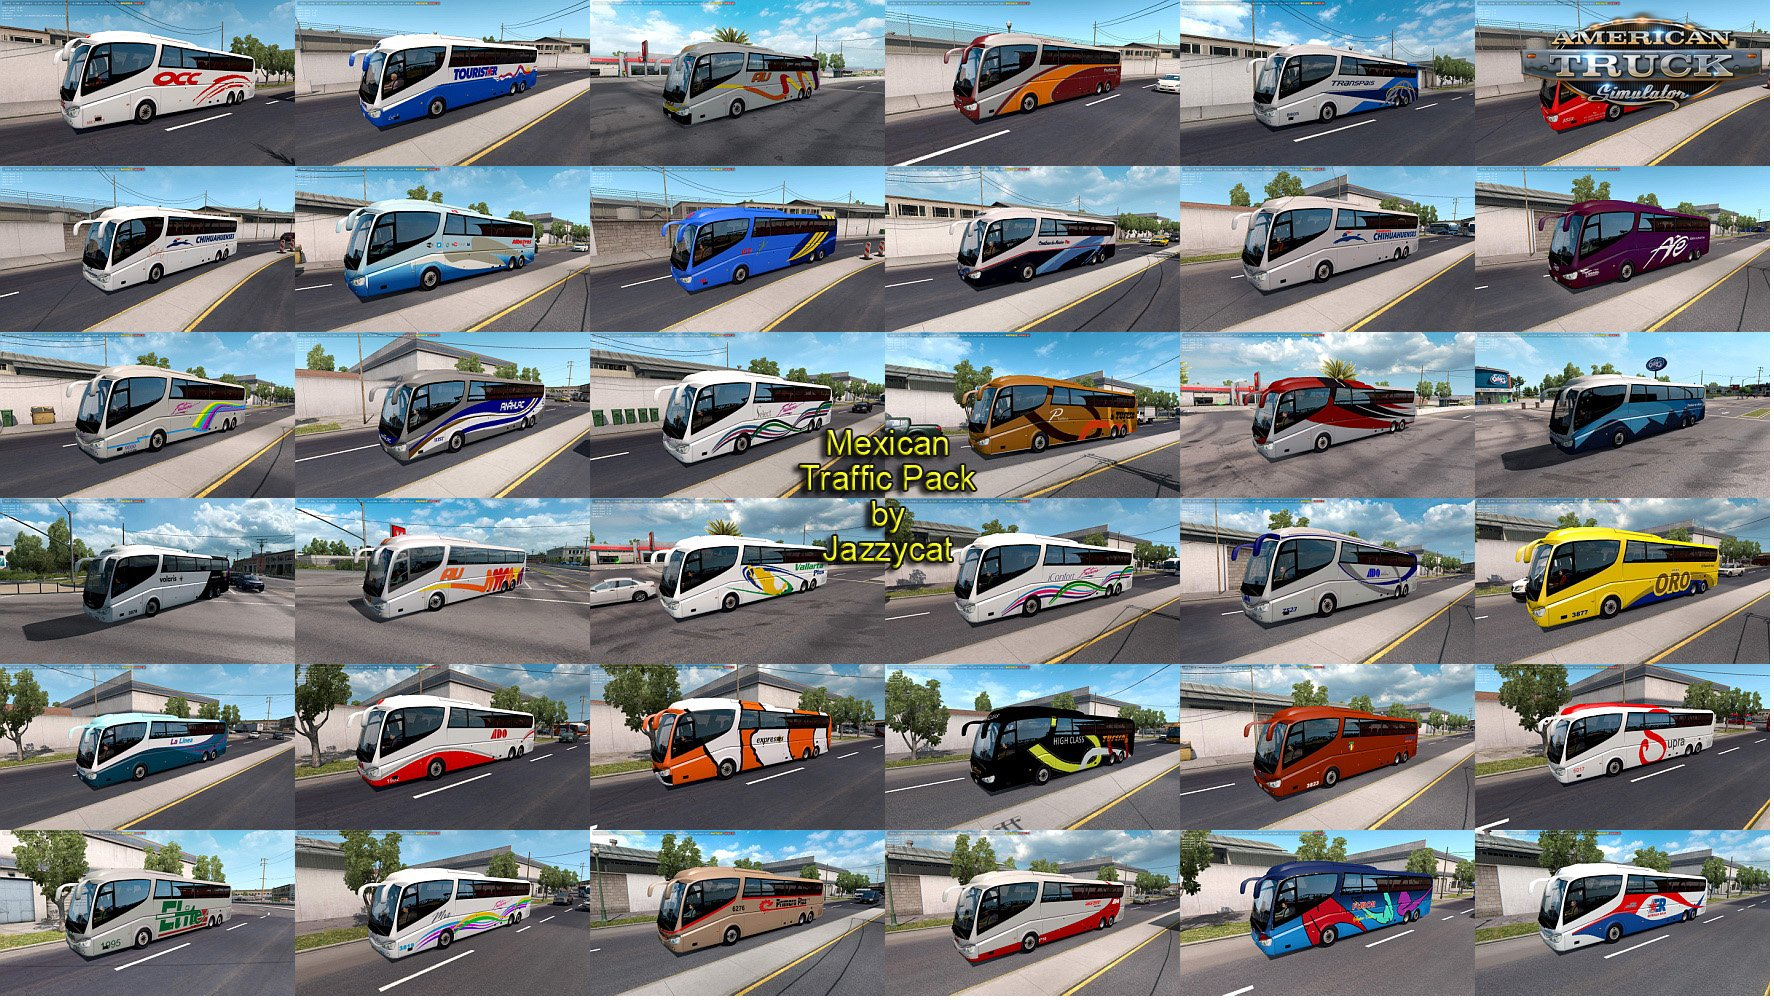 Mexican Traffic Pack v1.7 by Jazzycat